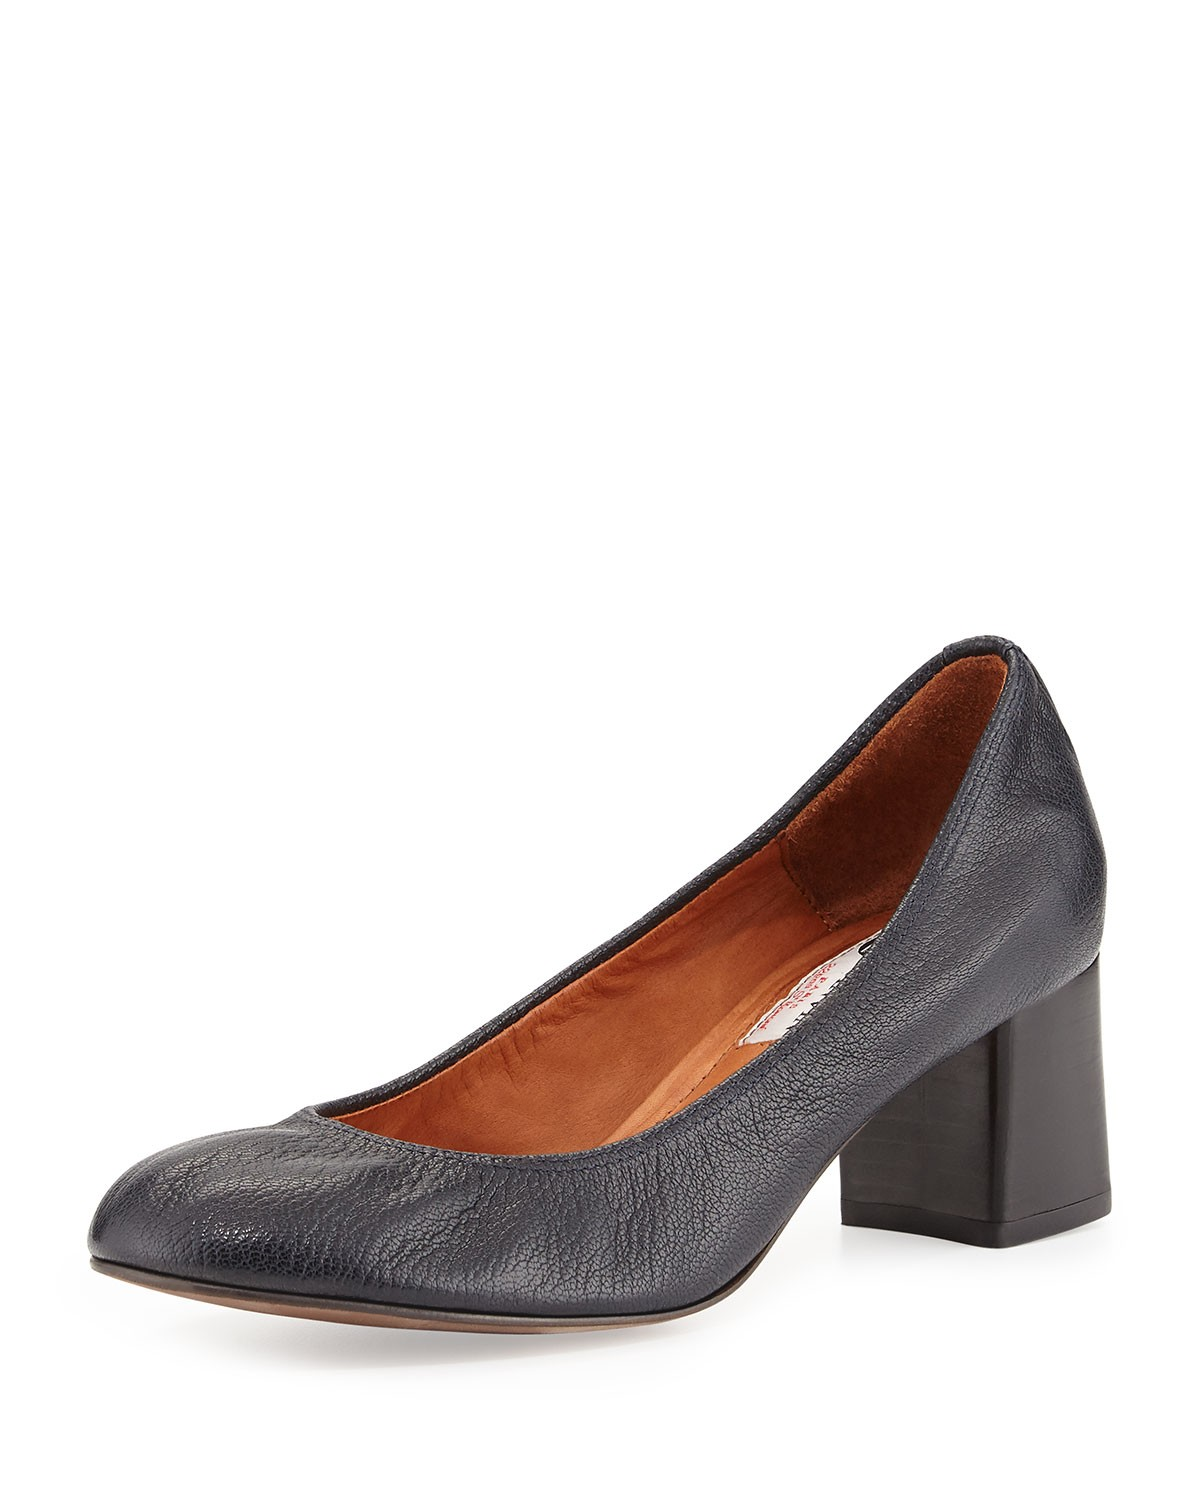 Tumbled Leather Cube-Heel Pump, Dark Blue - Lanvin